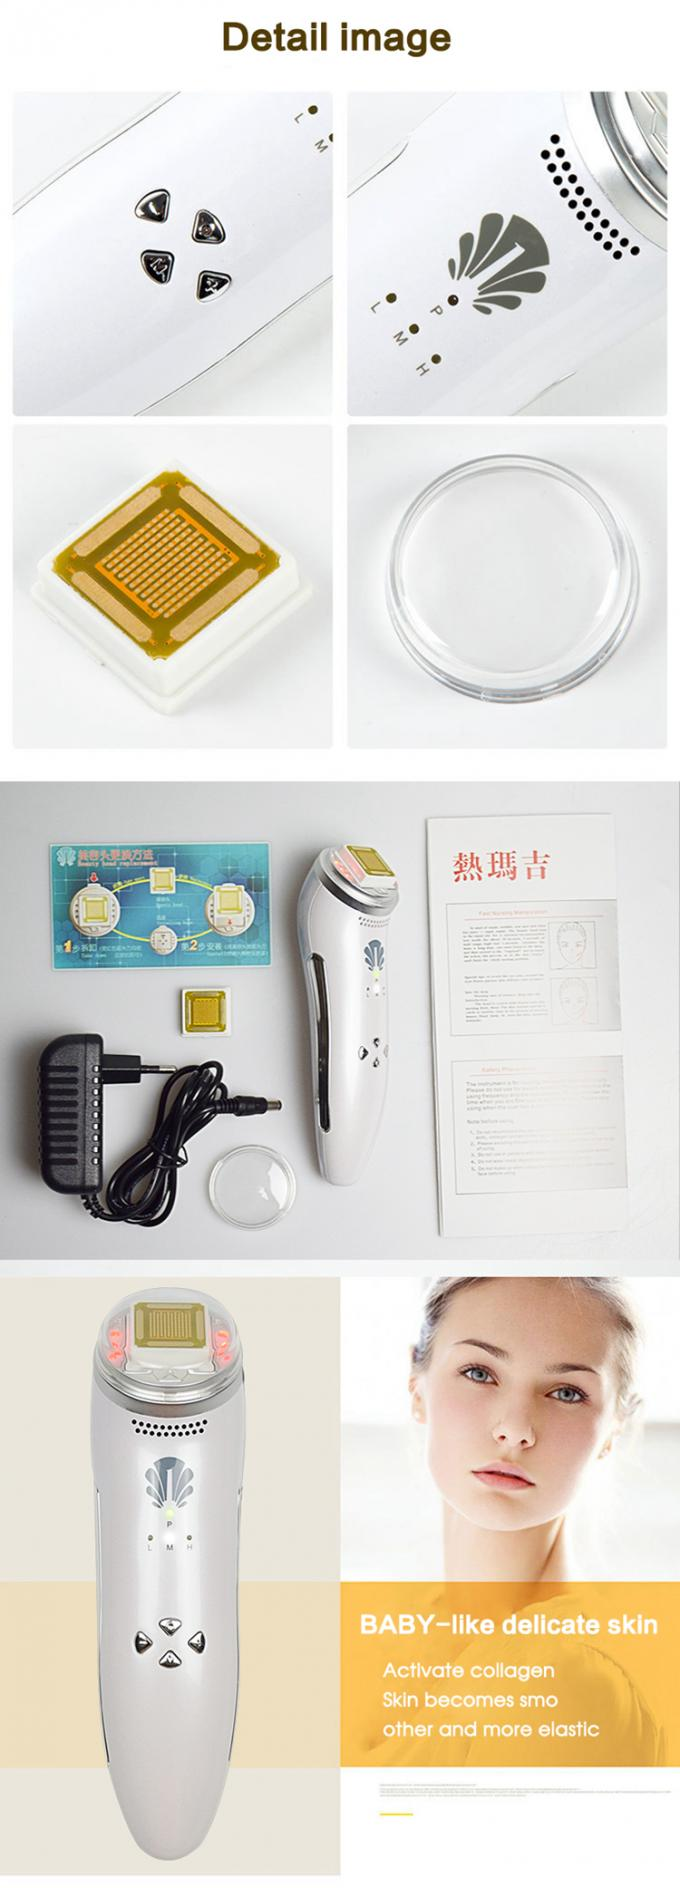 Home Ultrasound Beauty Machine , Rf Skin Tightening Machine Shrink Enlarged Pores